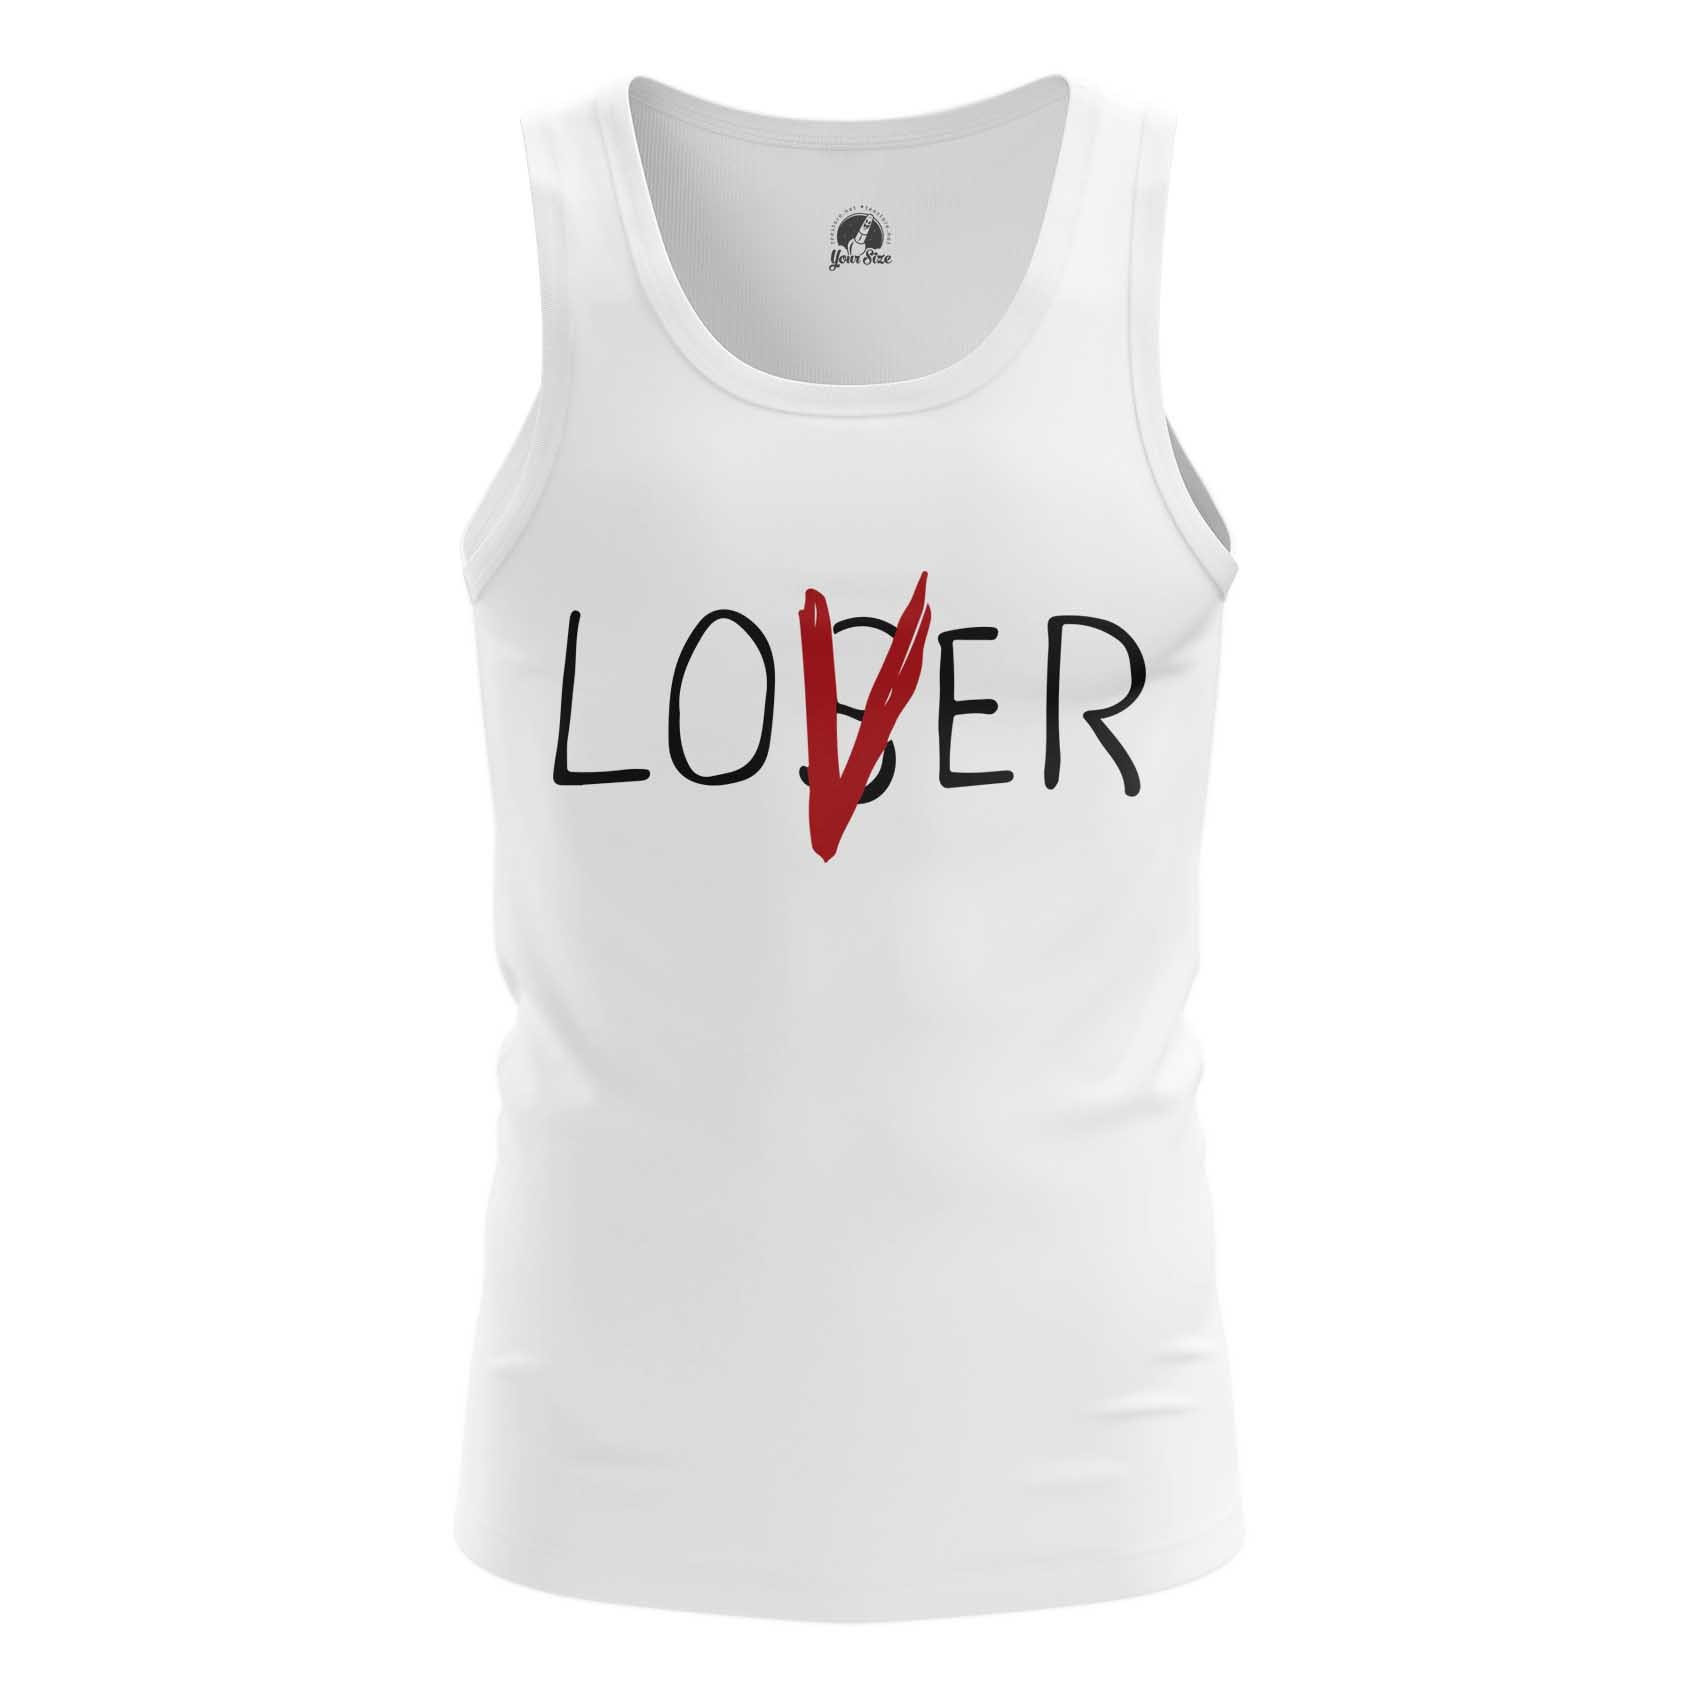 Collectibles Men'S T-Shirt Loser Lover It Stephen King 2017